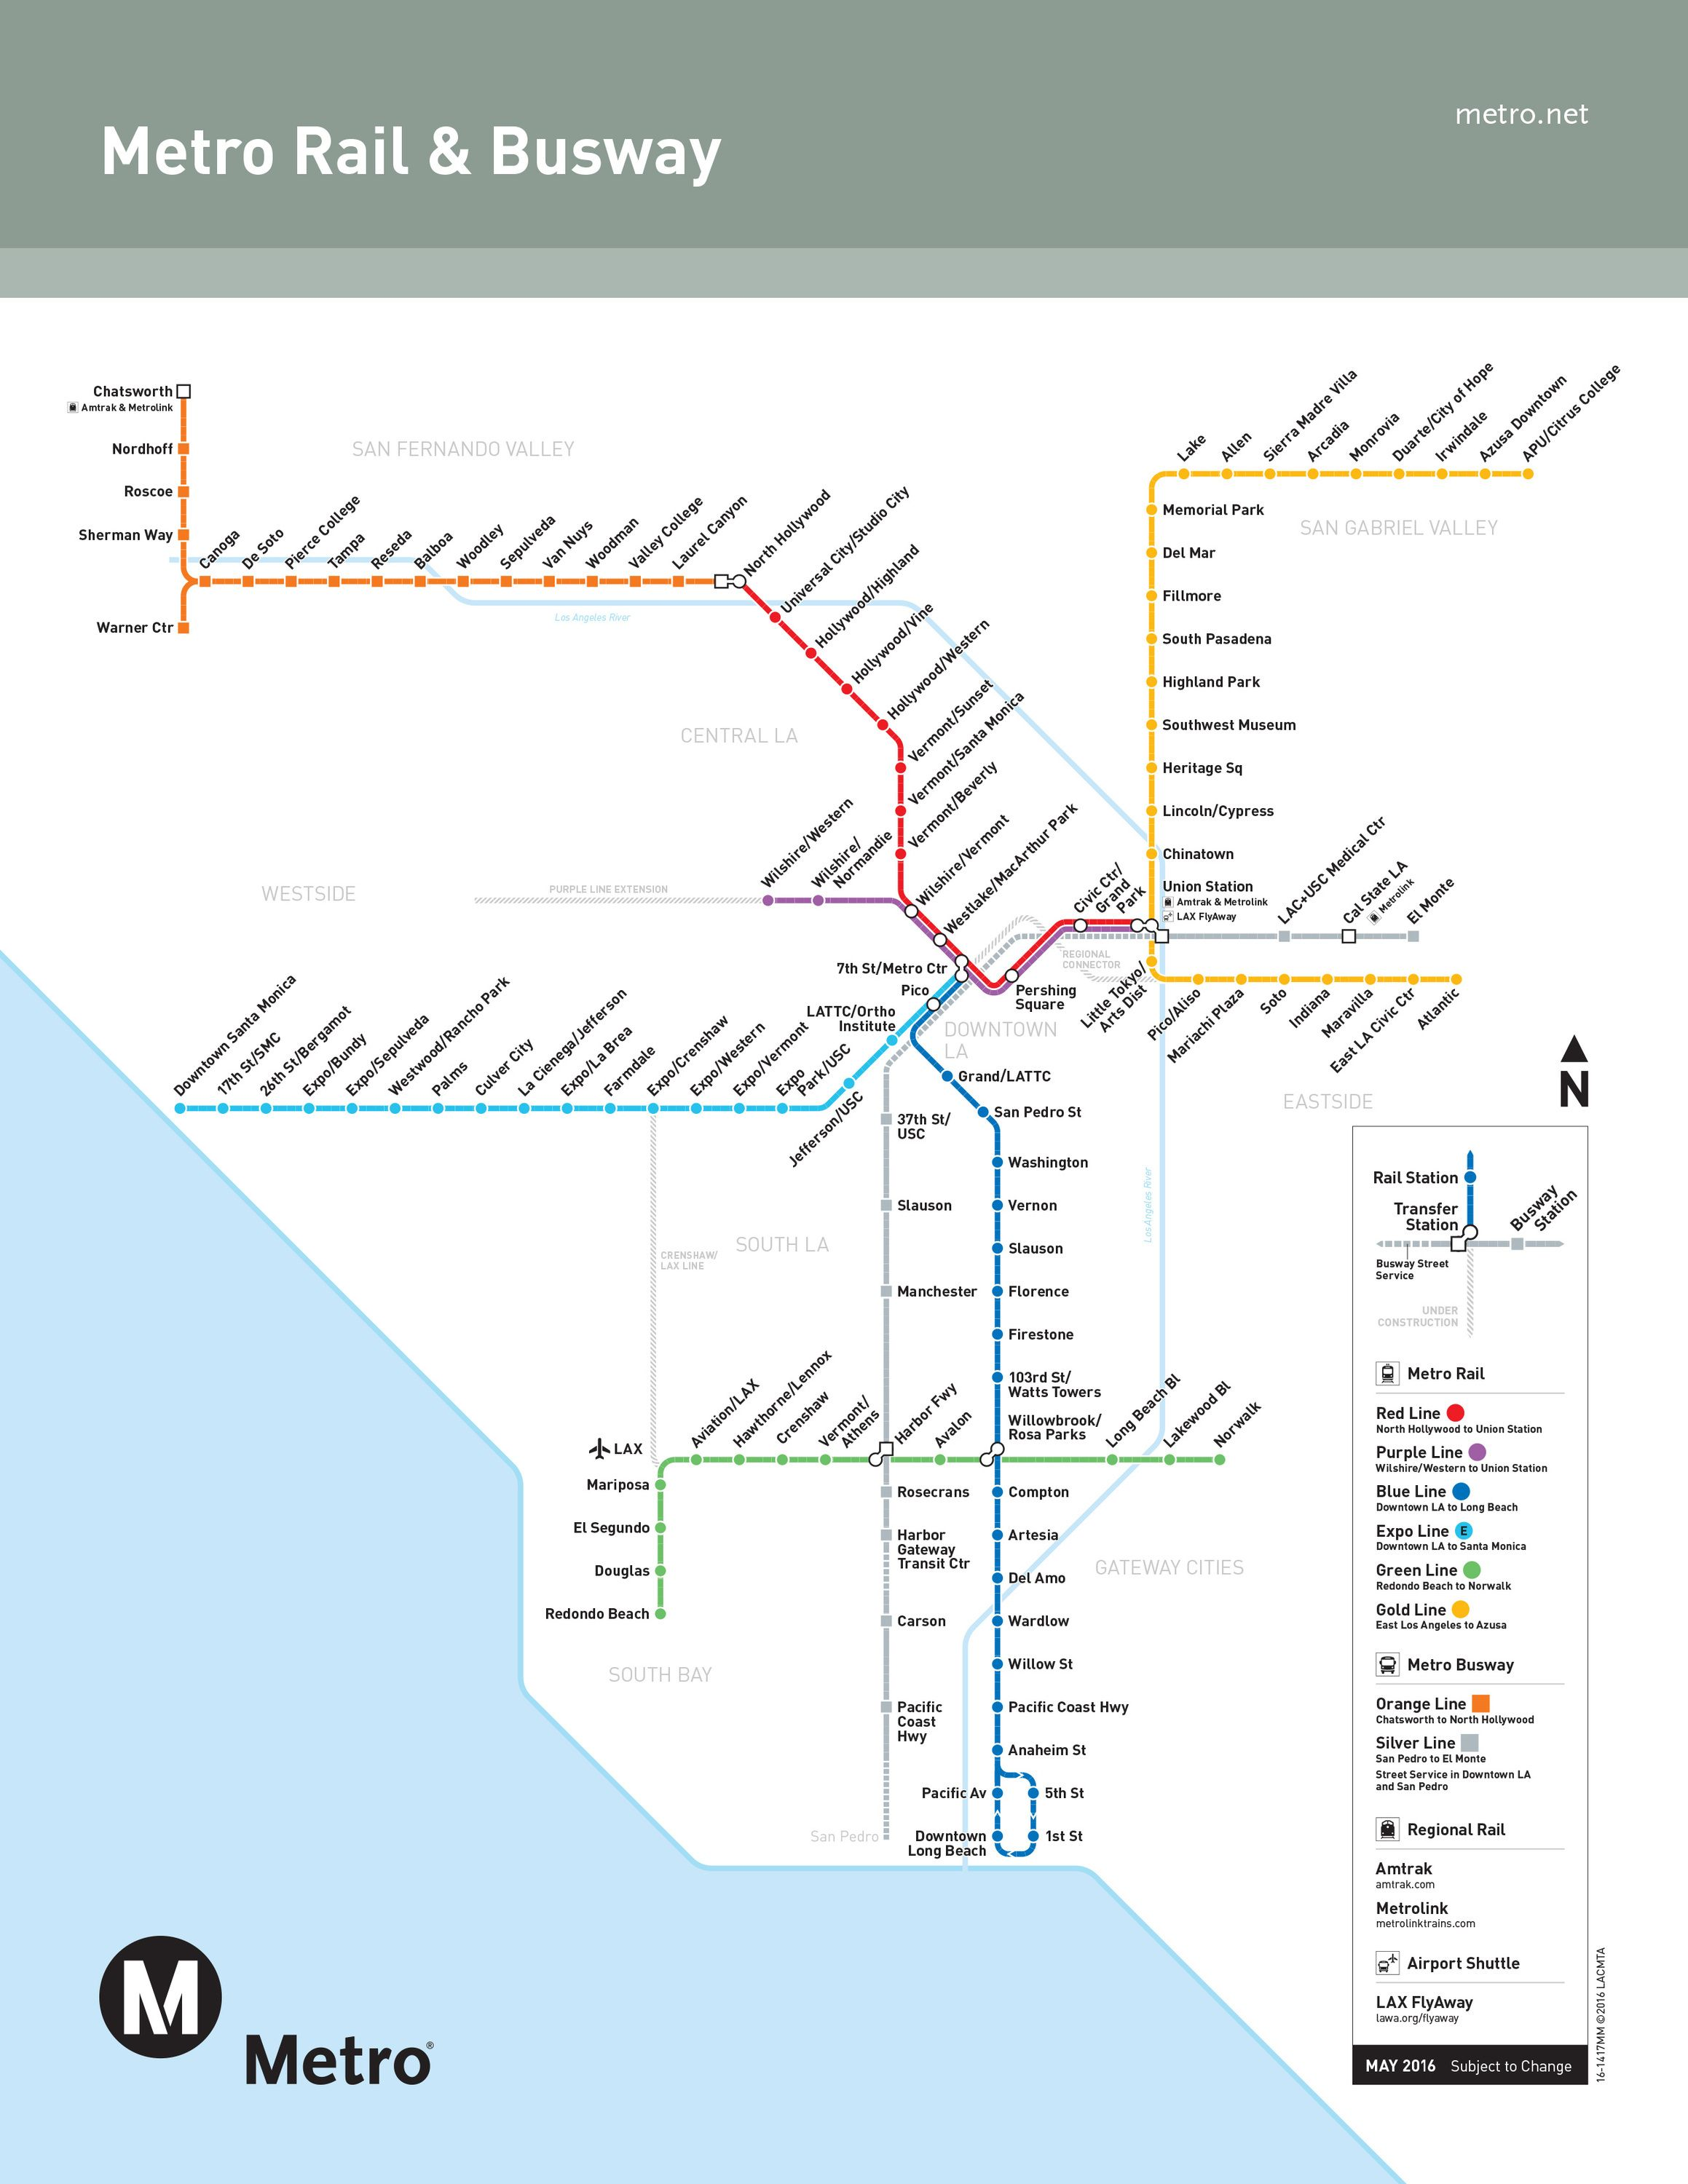 Los Angeles Subway Map 2016.A Beginner S Guide To Metro In 2019 Staycation Metro Rail